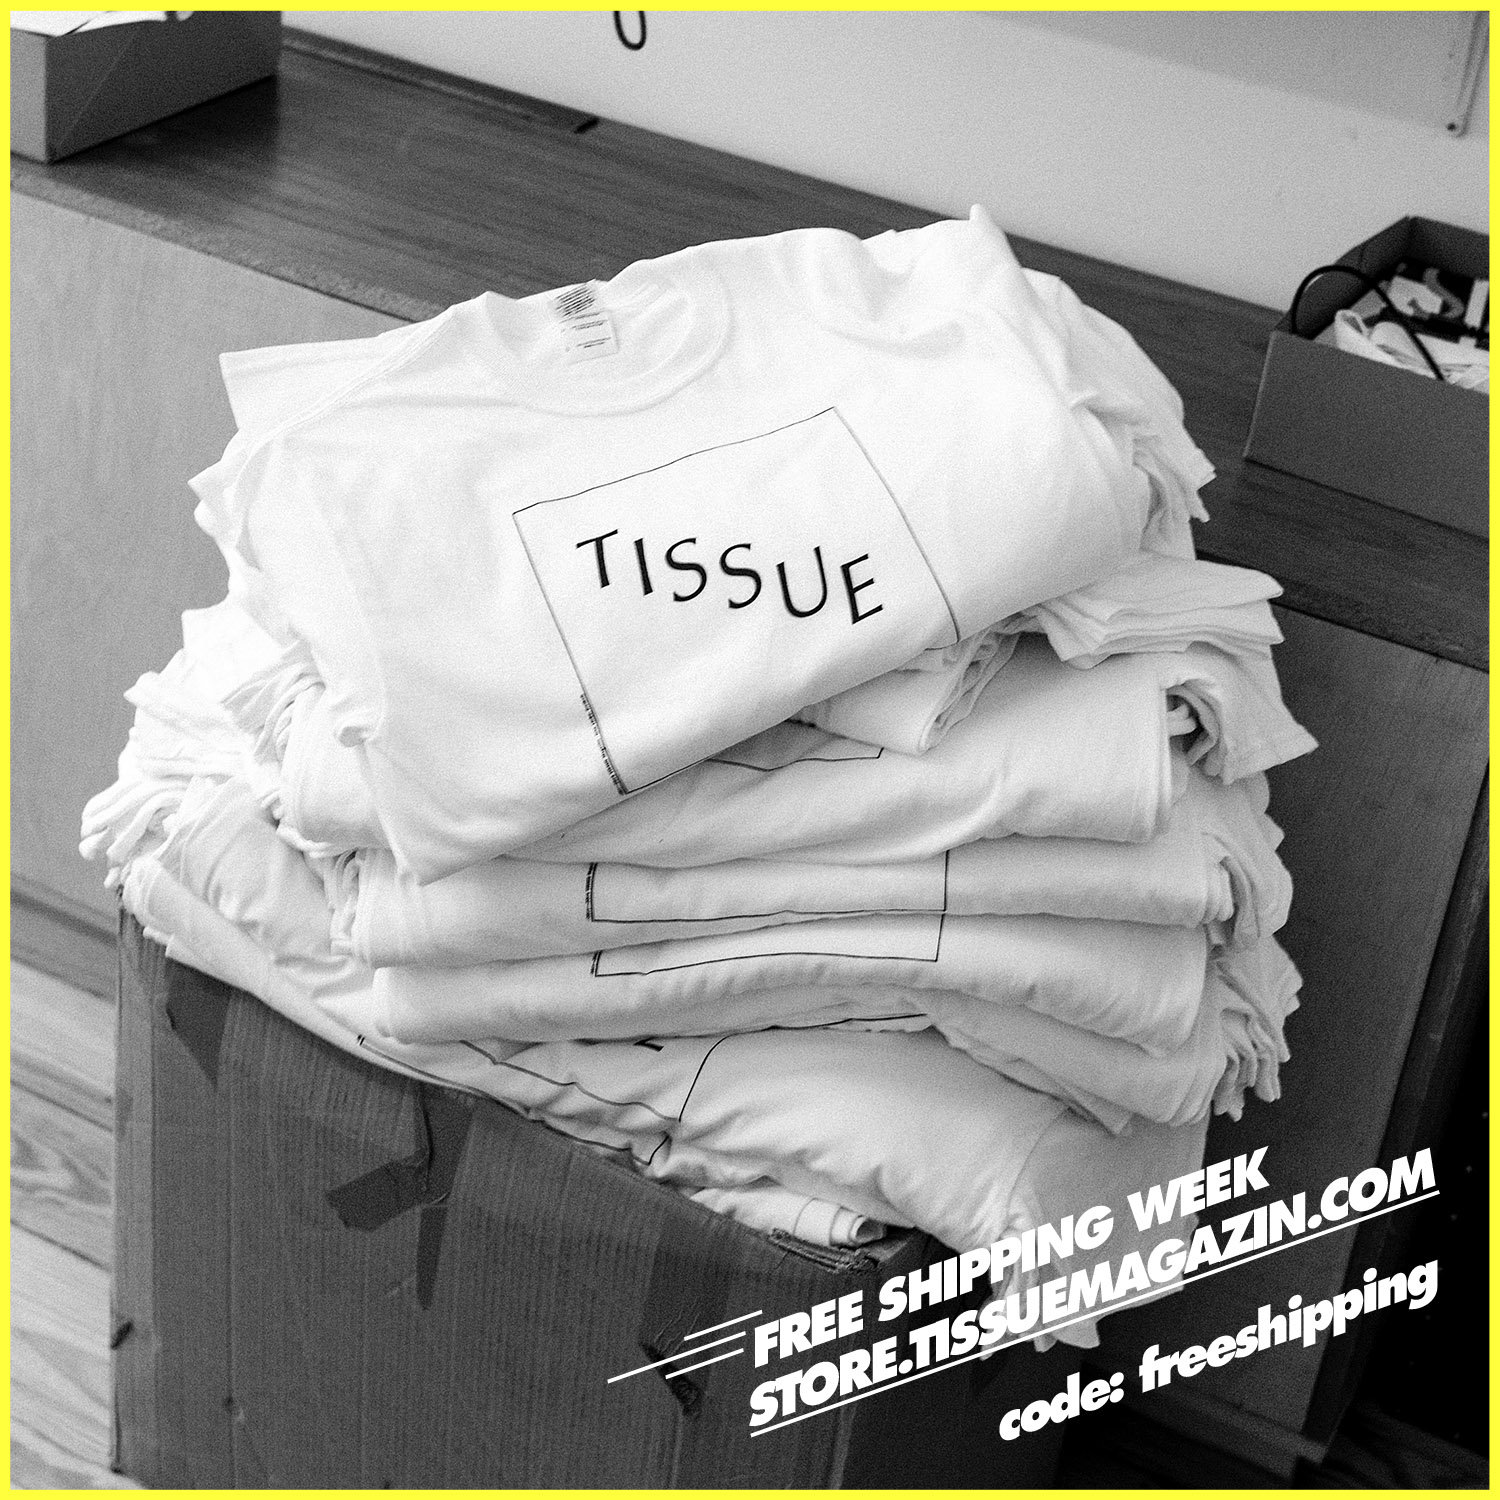 Free Shipping Week at TISSUE Magazine